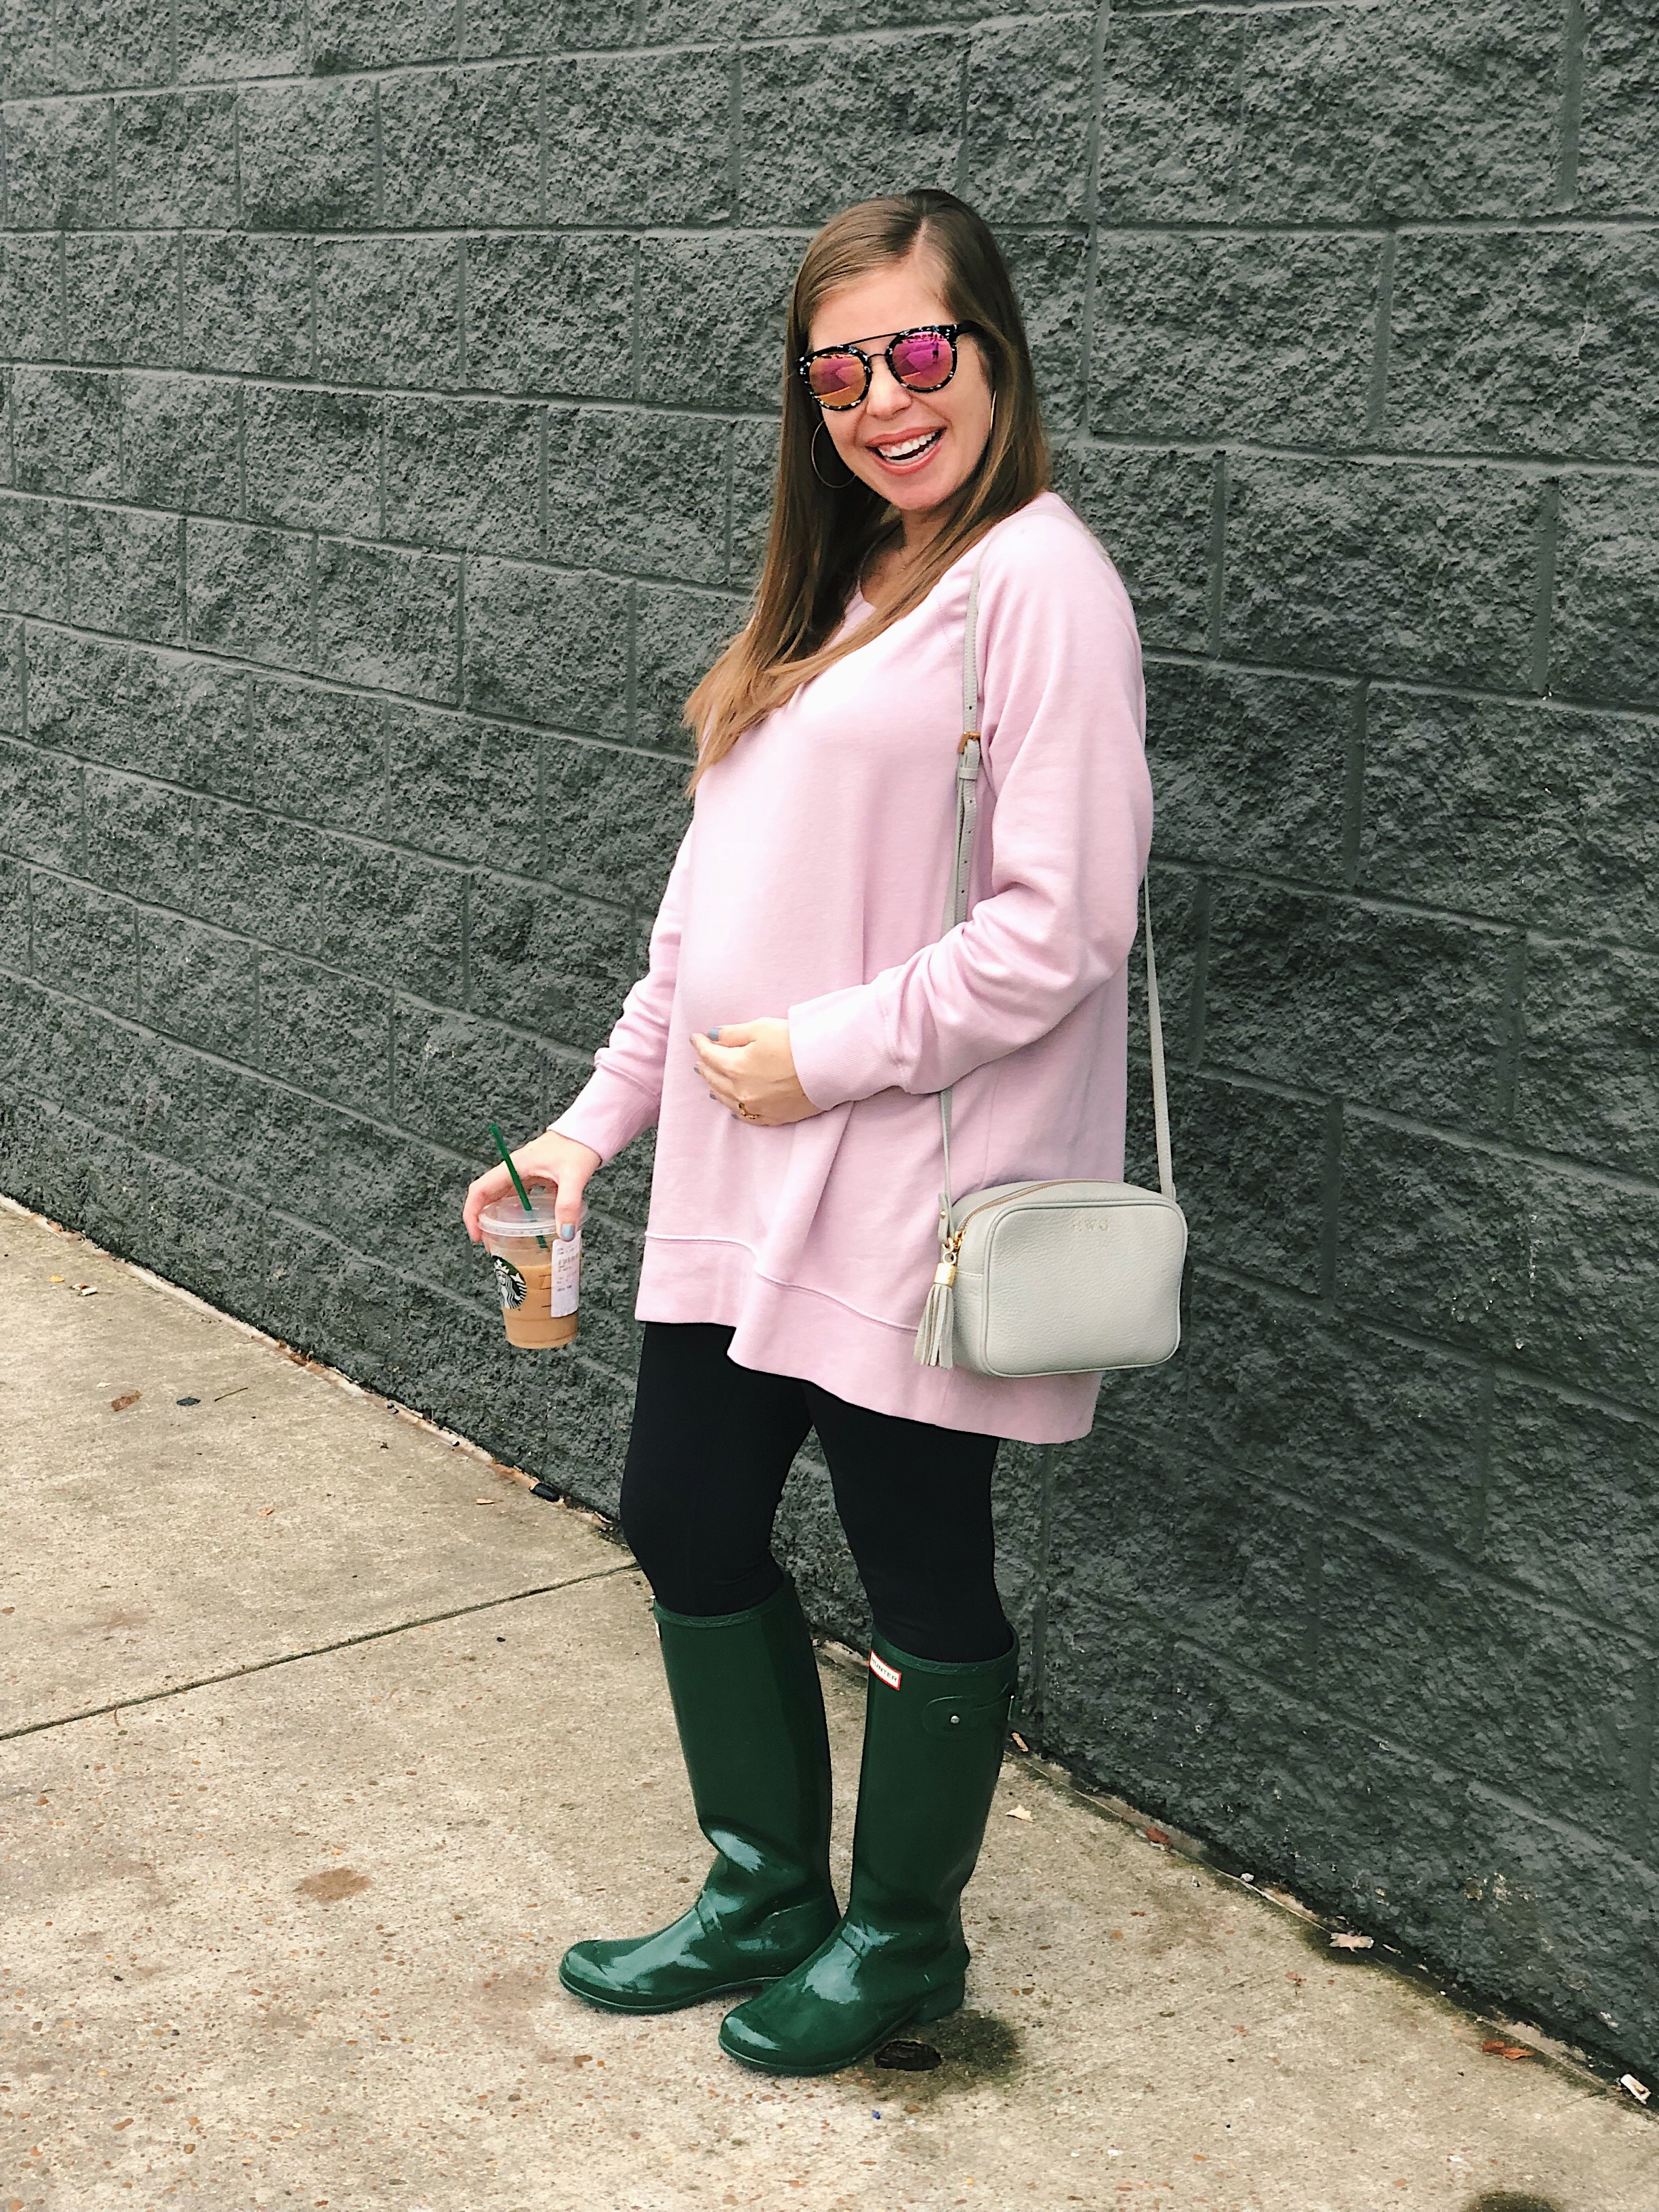 Tunic Sweatshirt      //      DIFF Sunglasses